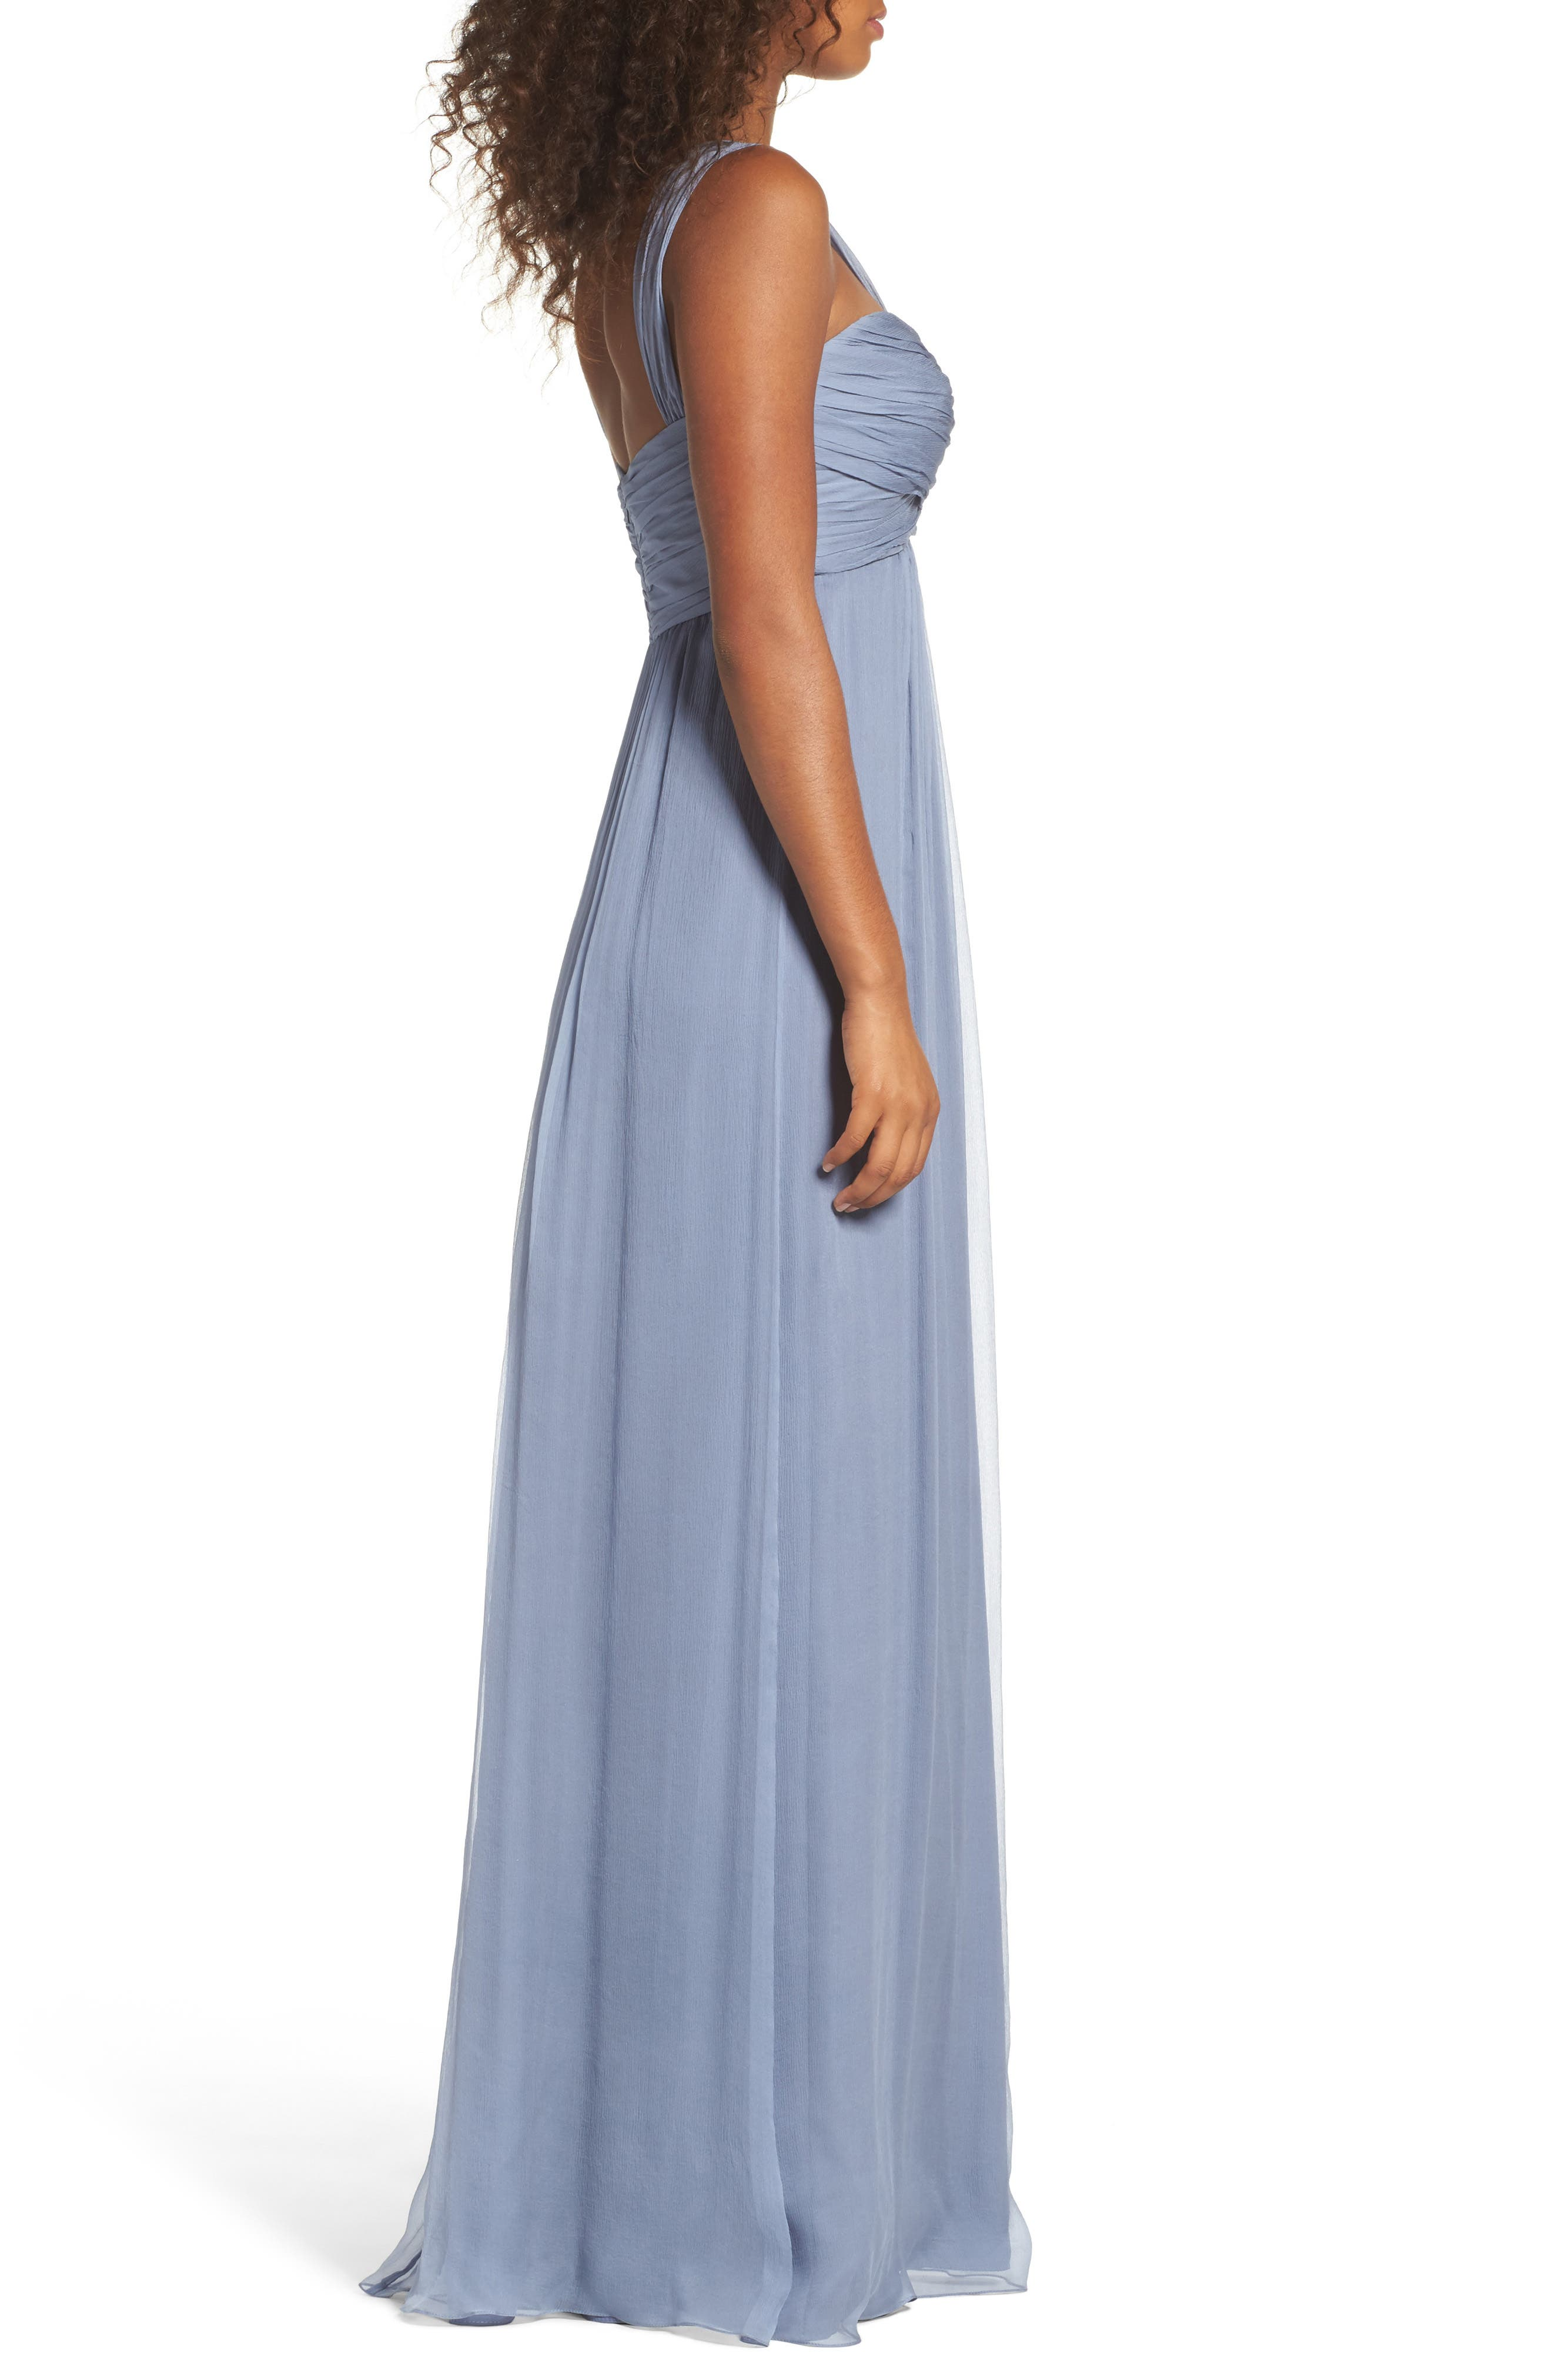 Corbin Crinkled Chiffon Empire Gown,                             Alternate thumbnail 3, color,                             020